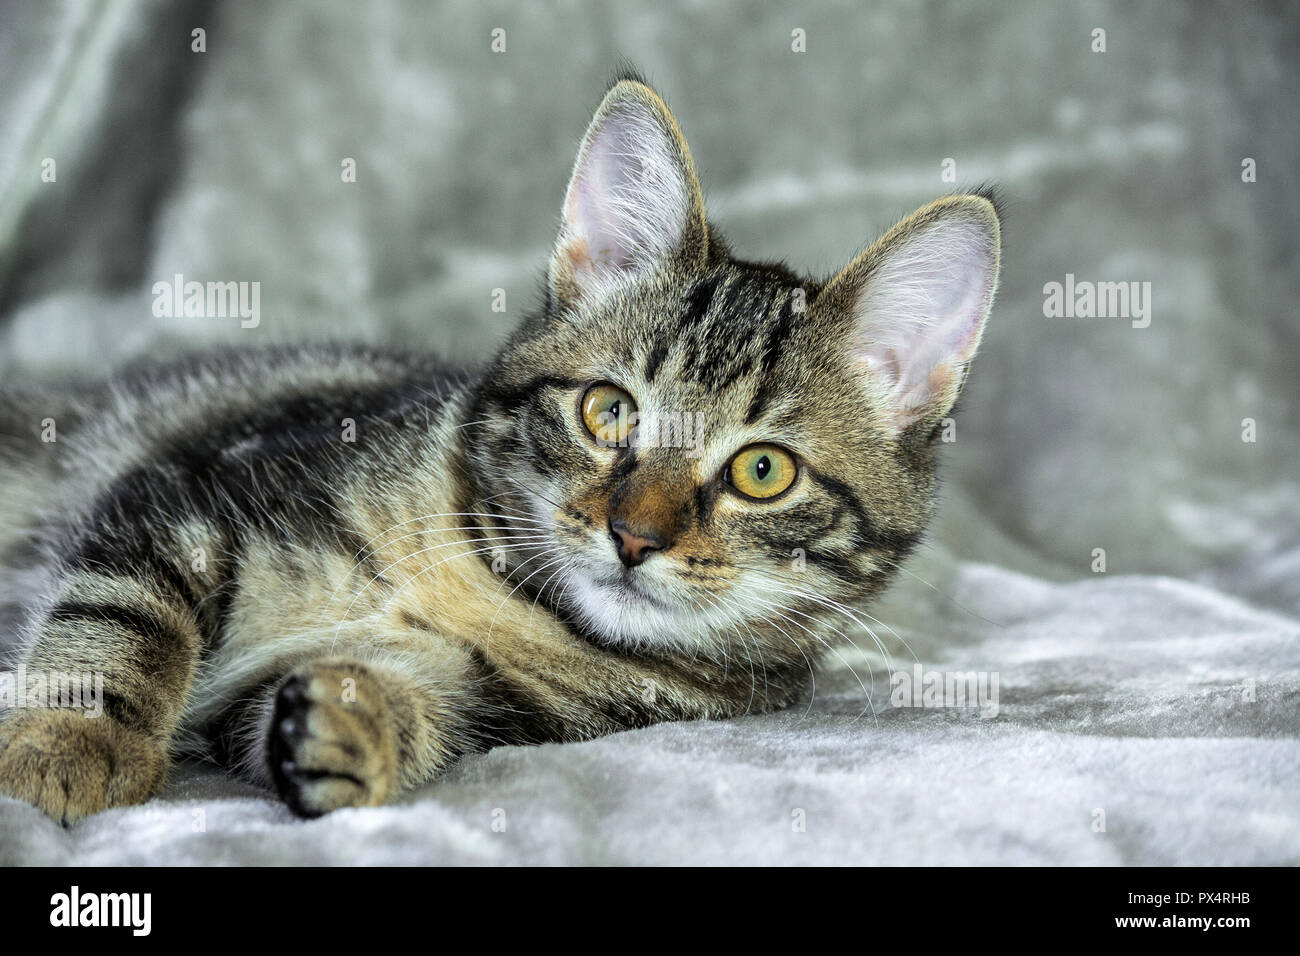 small mongrel striped kitten lying on its side, front paws stretched out, muzzle into the camera, looking straight, yellow with green eyes, orange - Stock Image